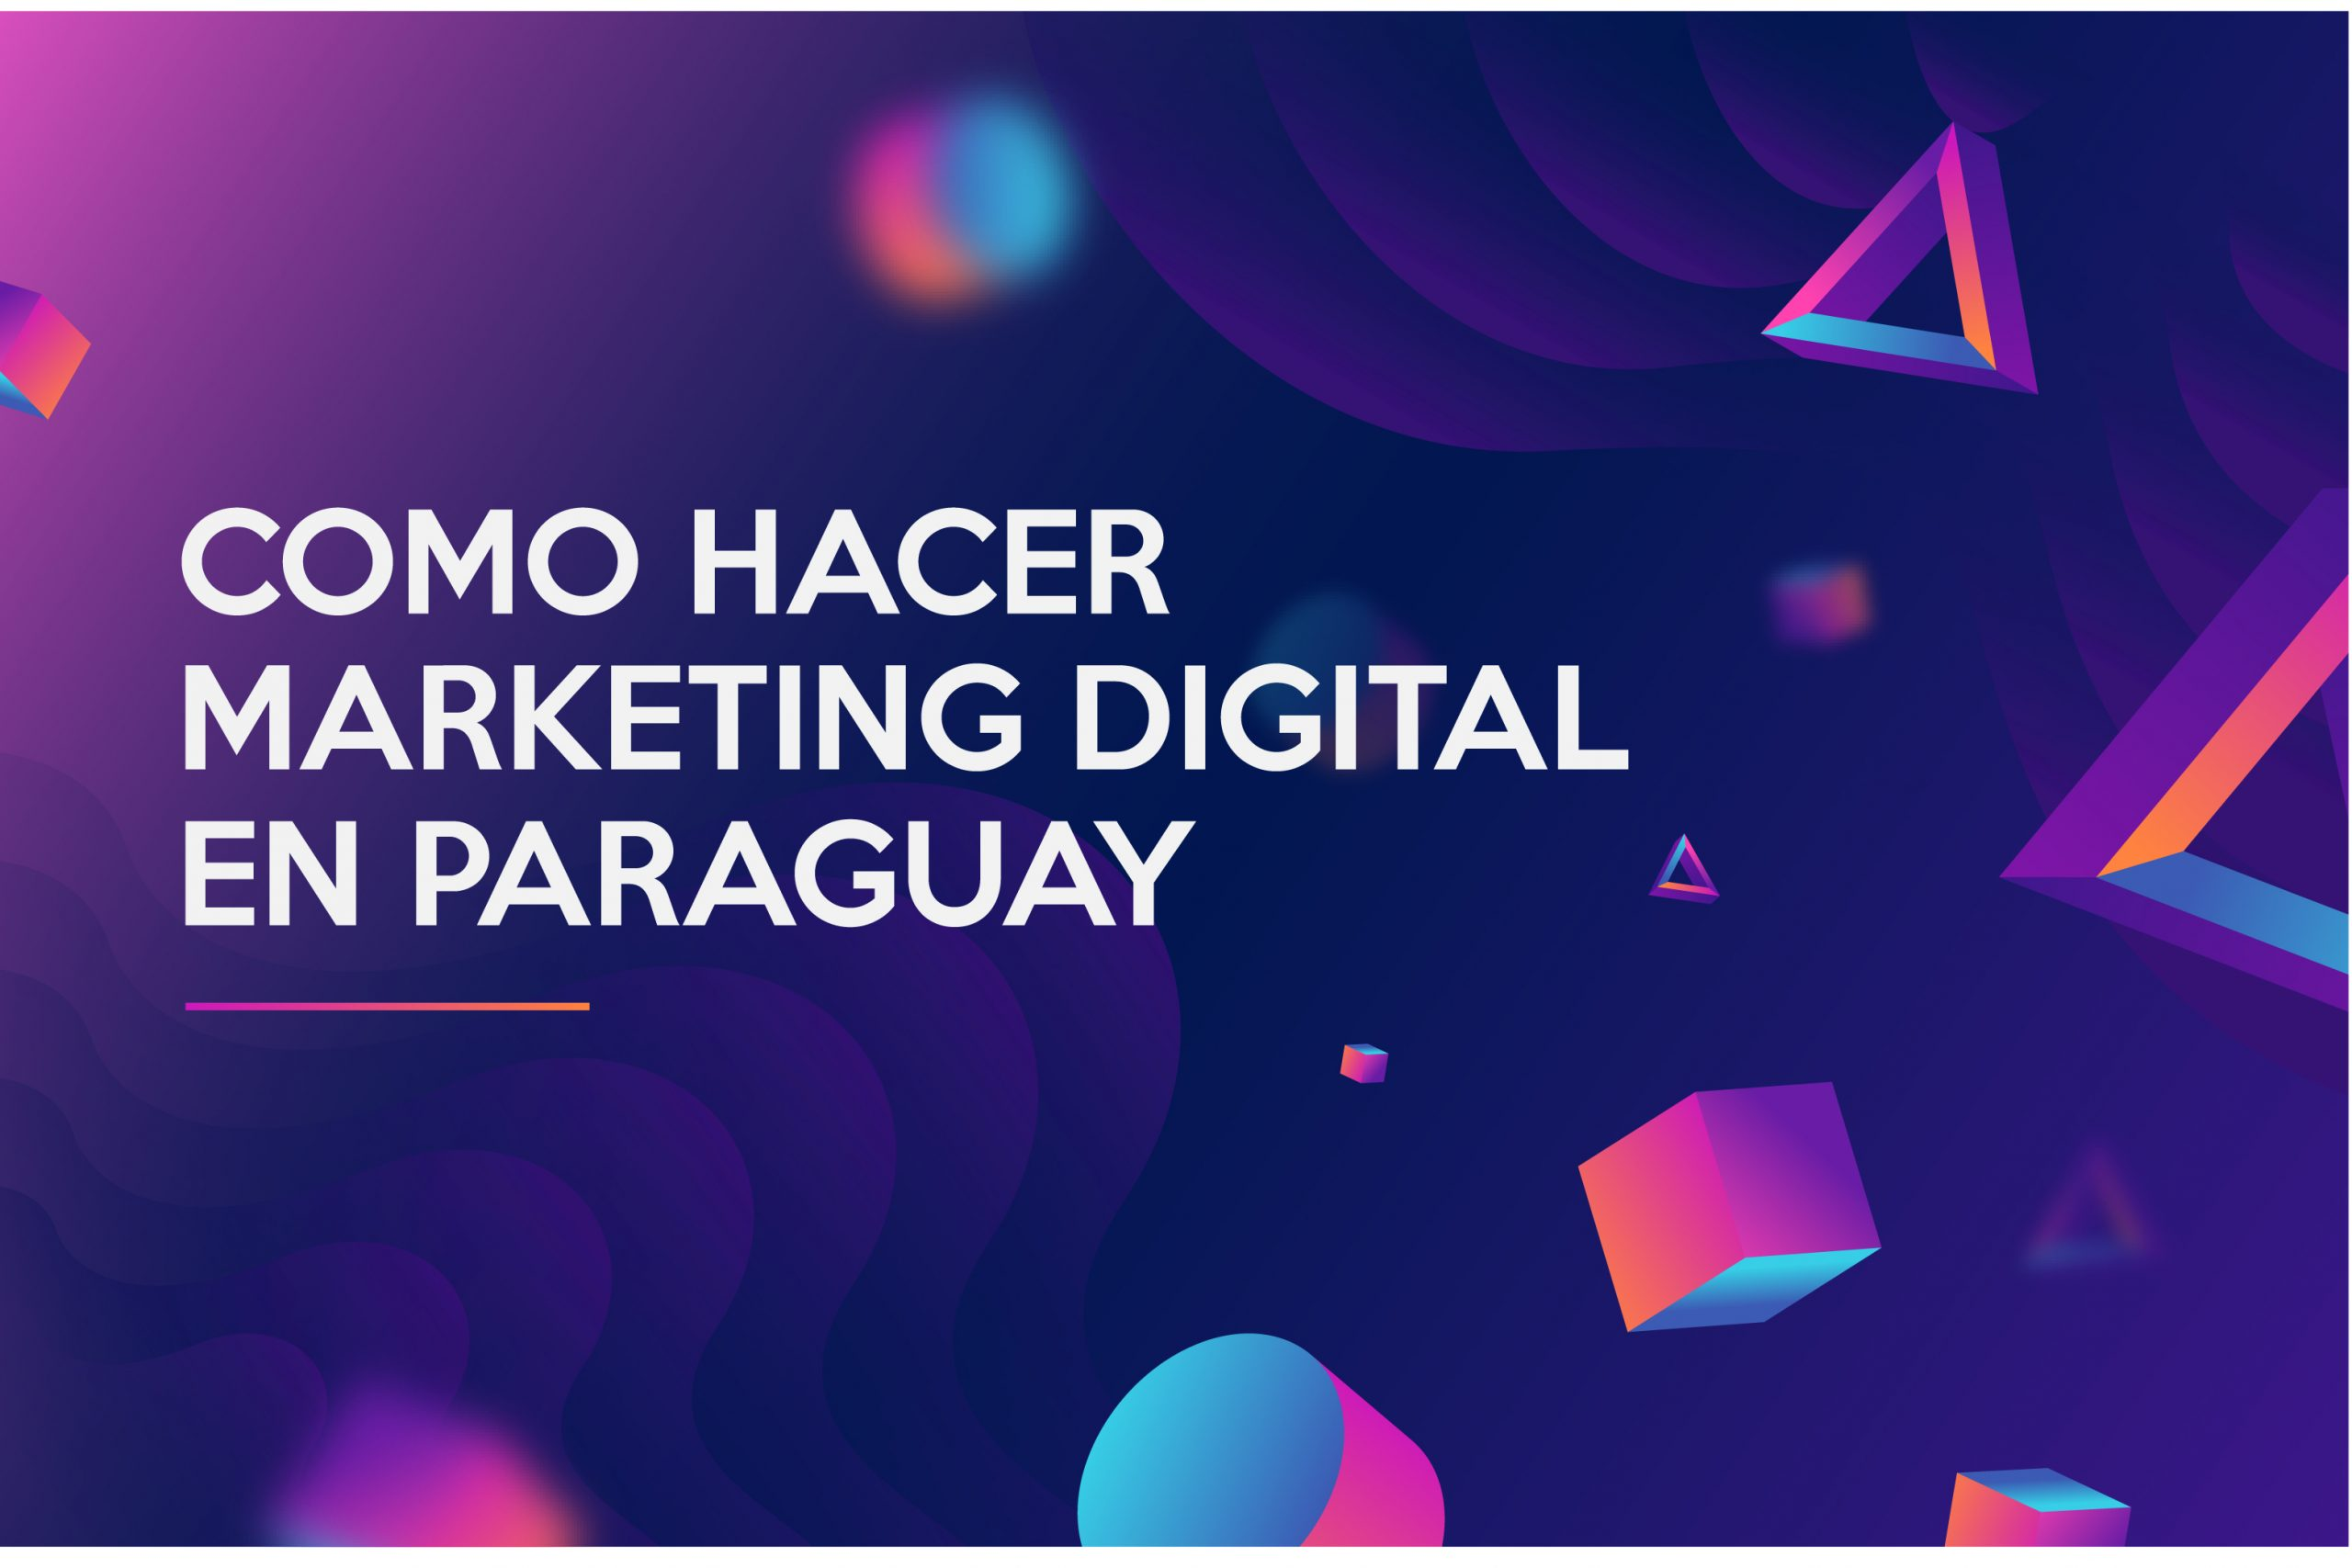 Marketing digital en paraguay